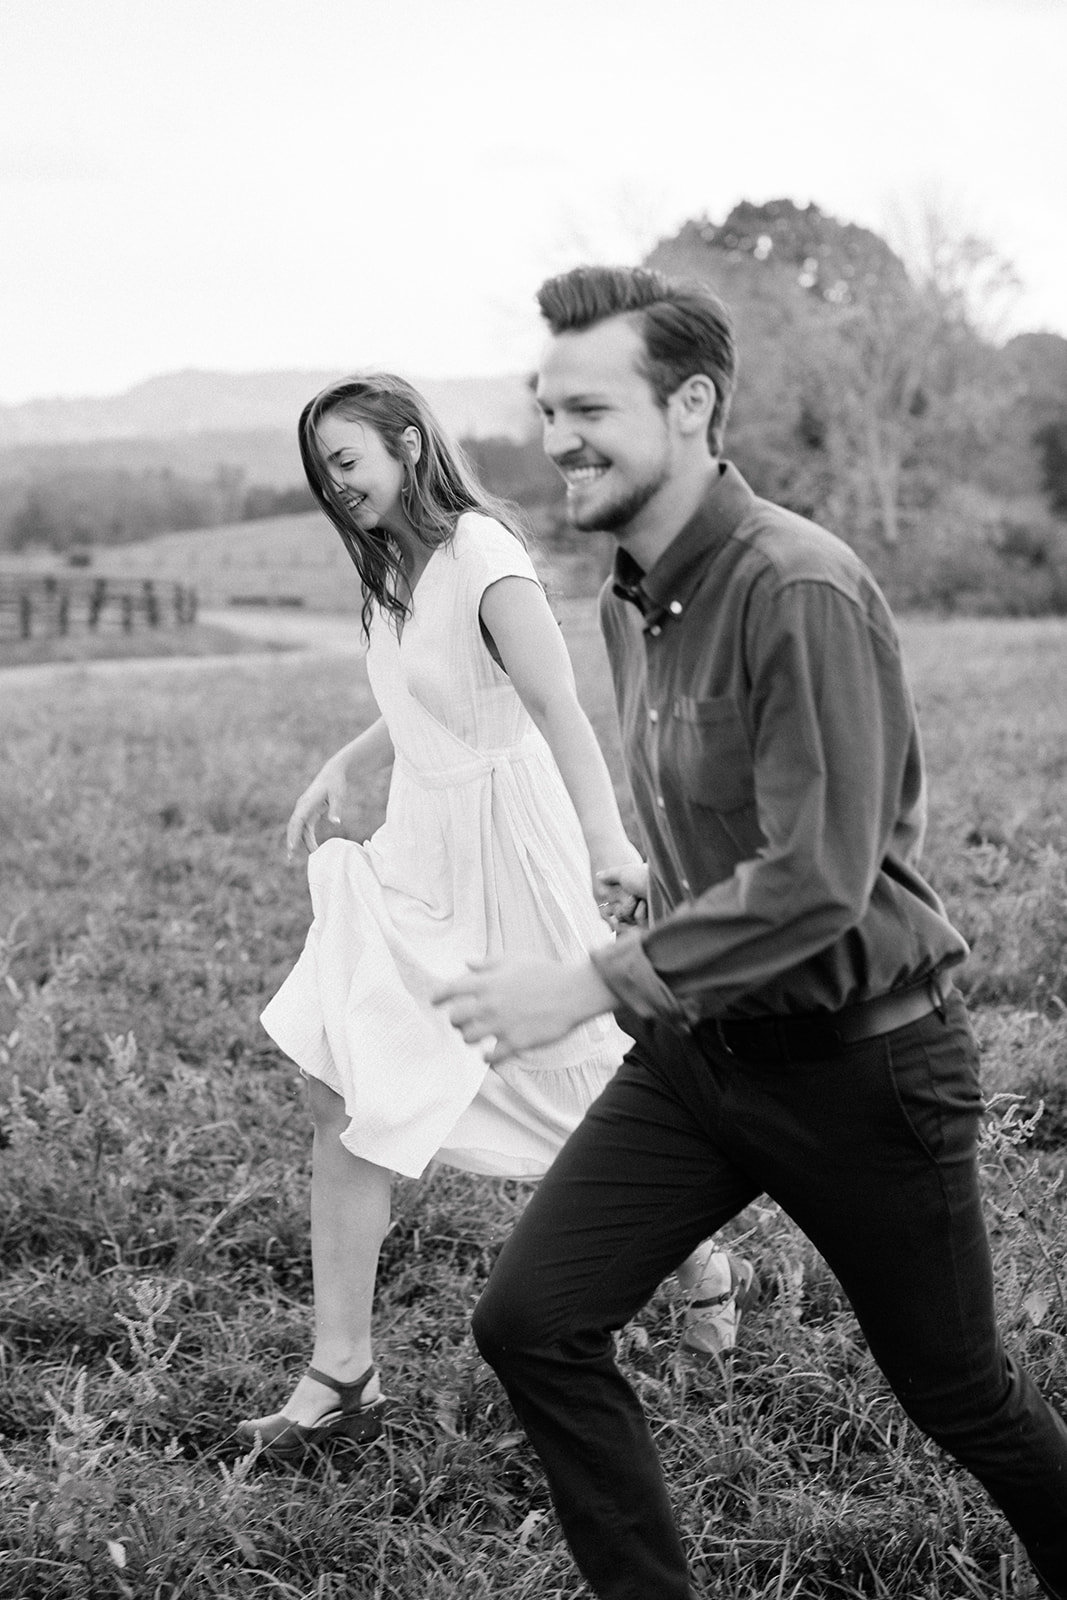 michela-brooke-photo-maryclaire-caleb-farm-engagement-61_websize